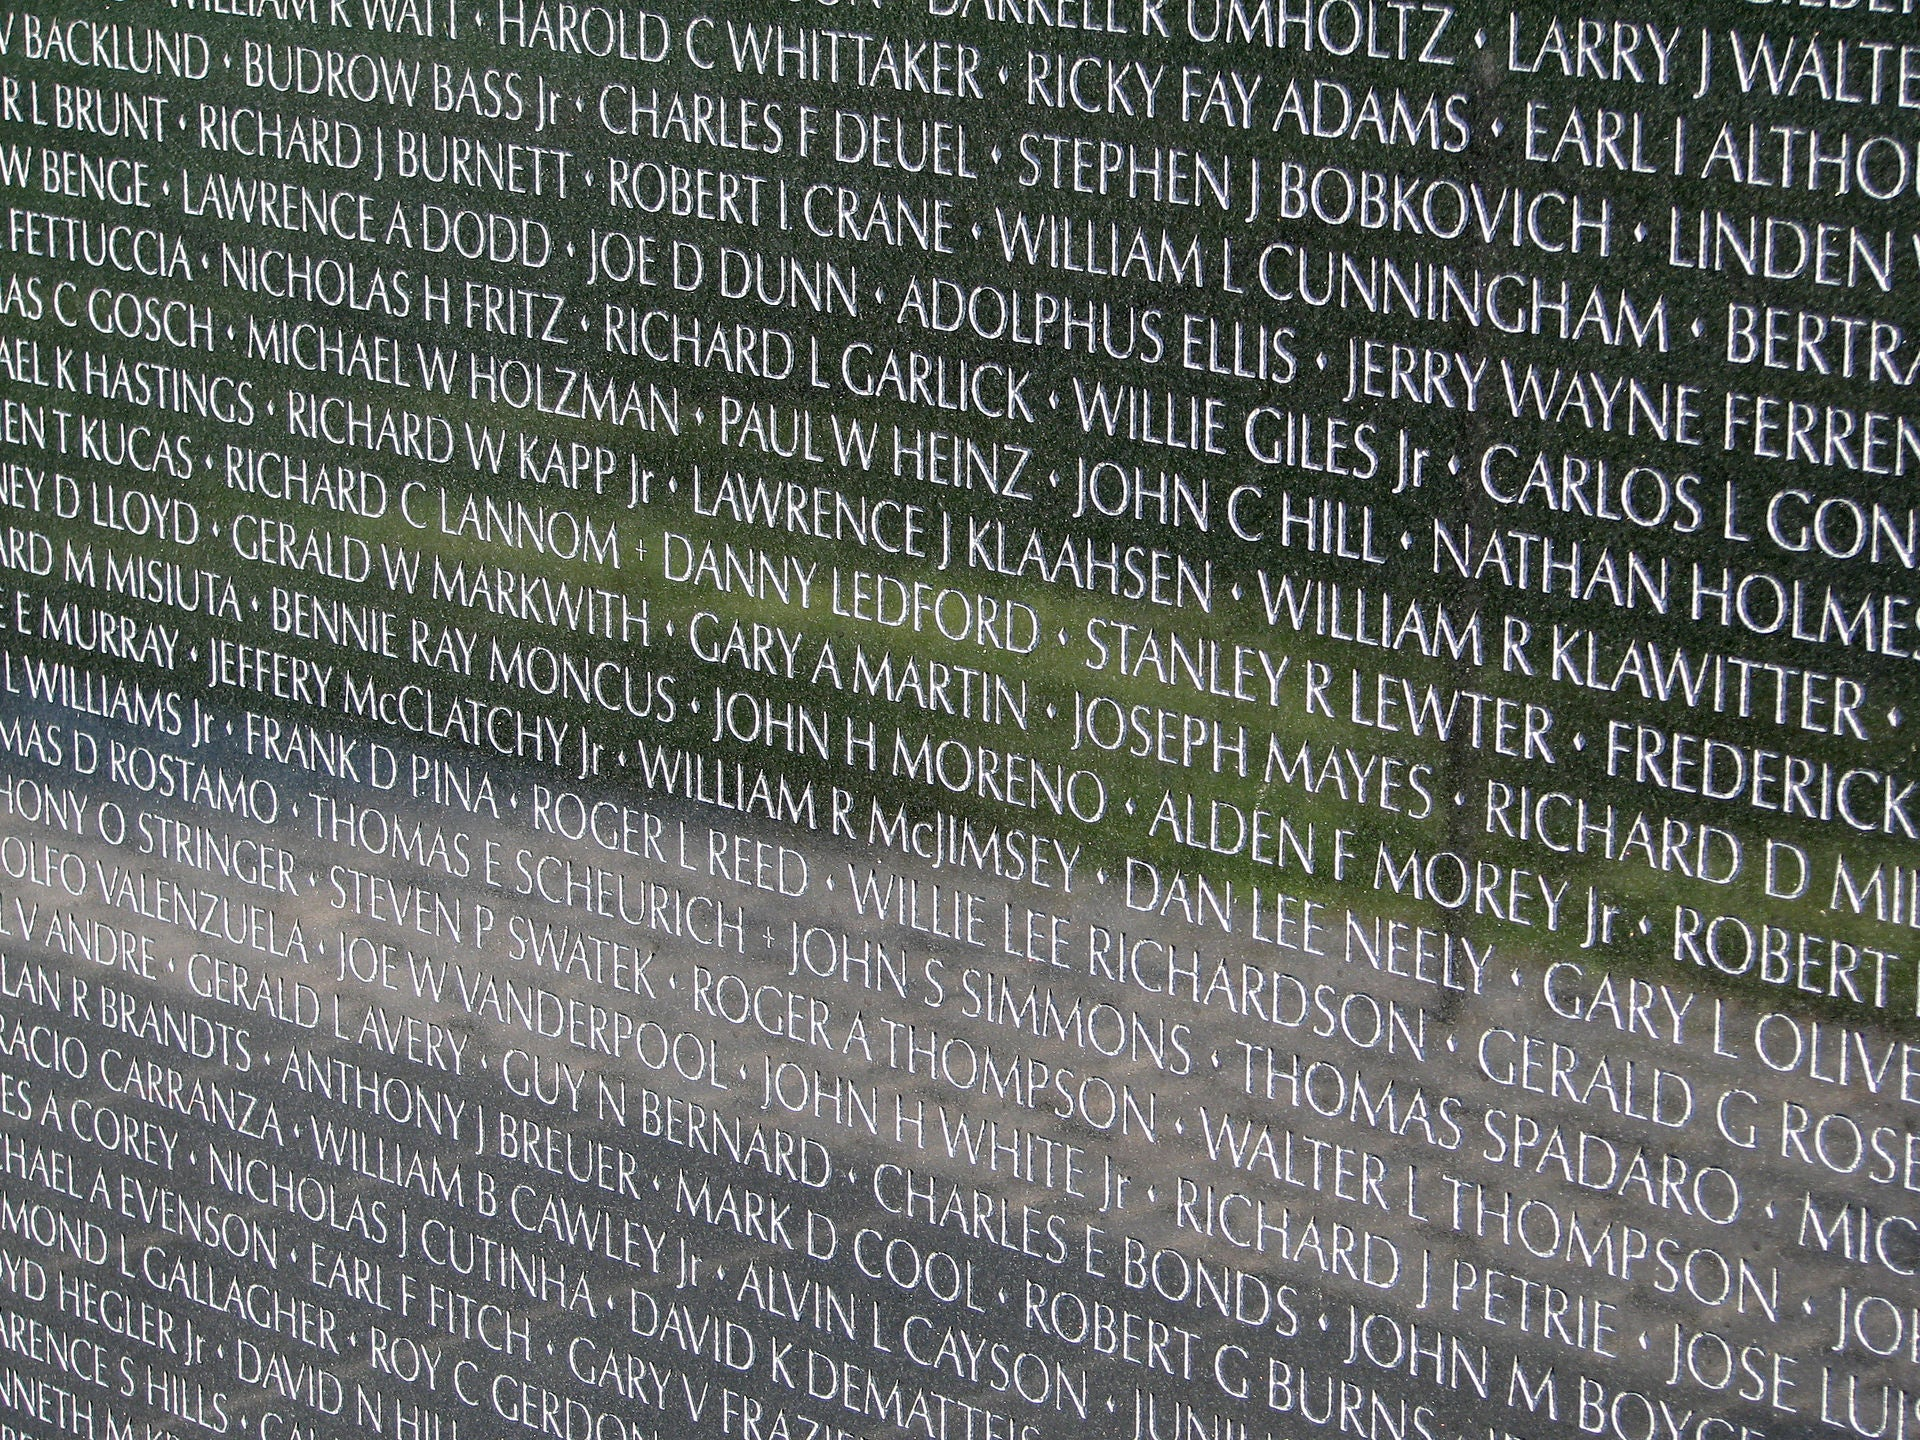 Why names are added to the Vietnam Veterans Memorial Wall